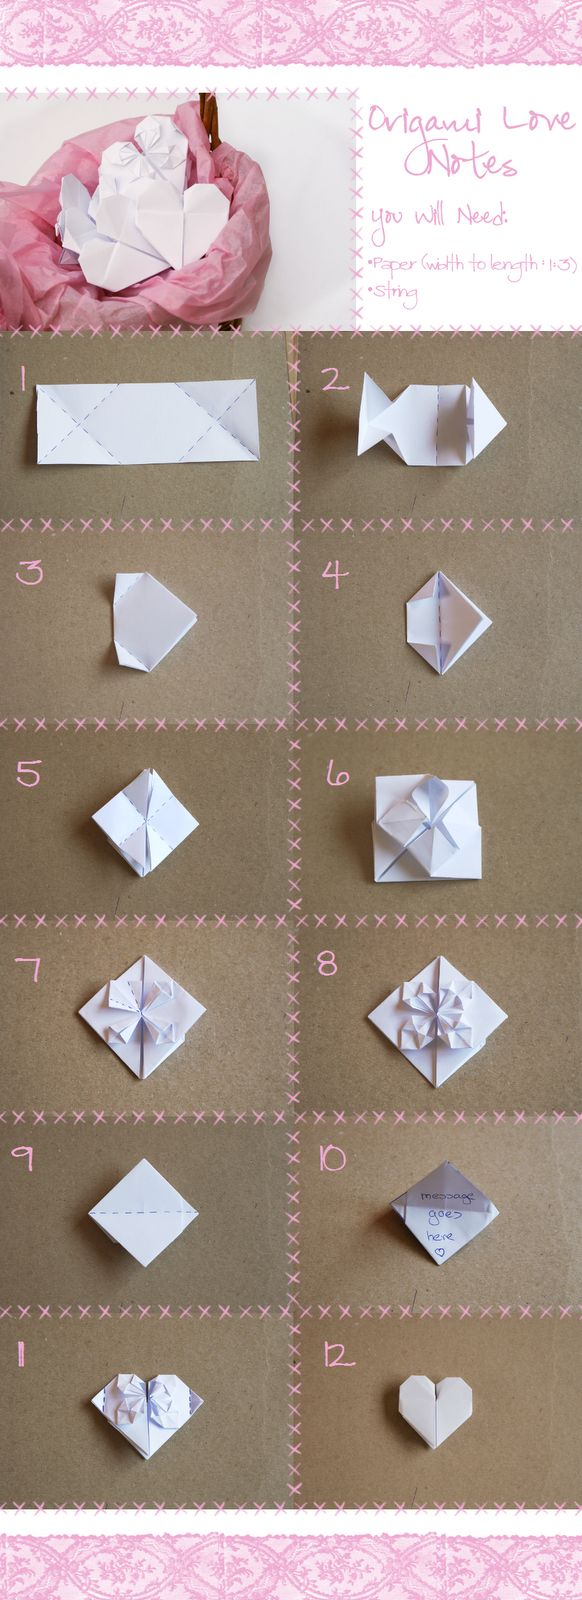 origami love notes paper play pinterest